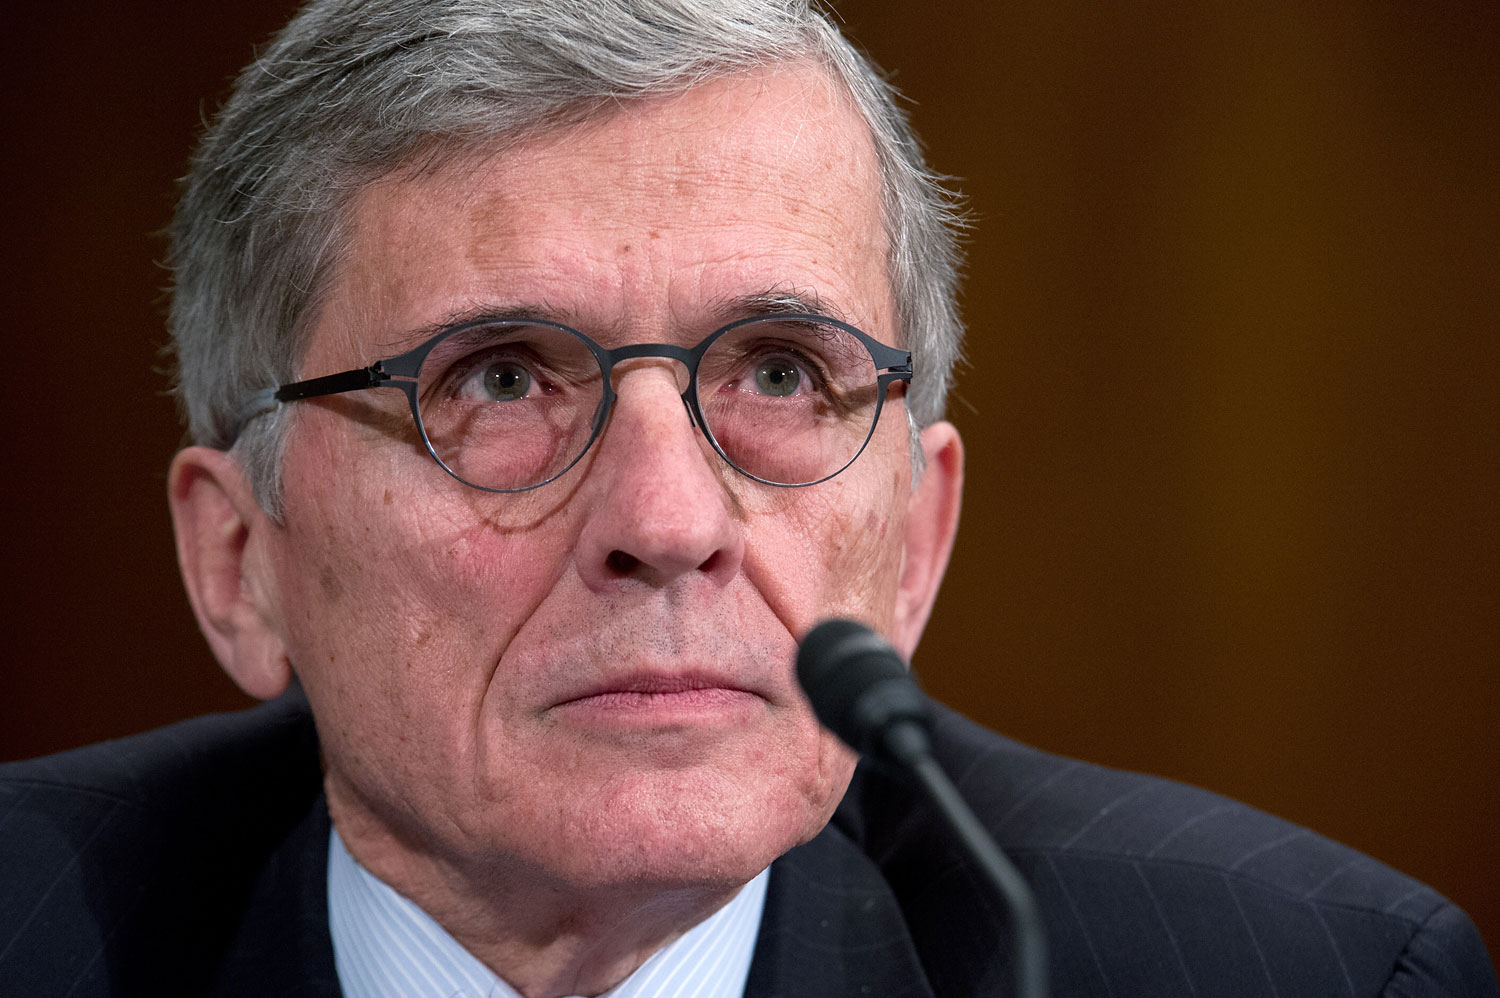 FCC Chairman Tom Wheeler gives during a Subcommittee hearing on March 27, 2014 on Capitol Hill in Washington, DC.